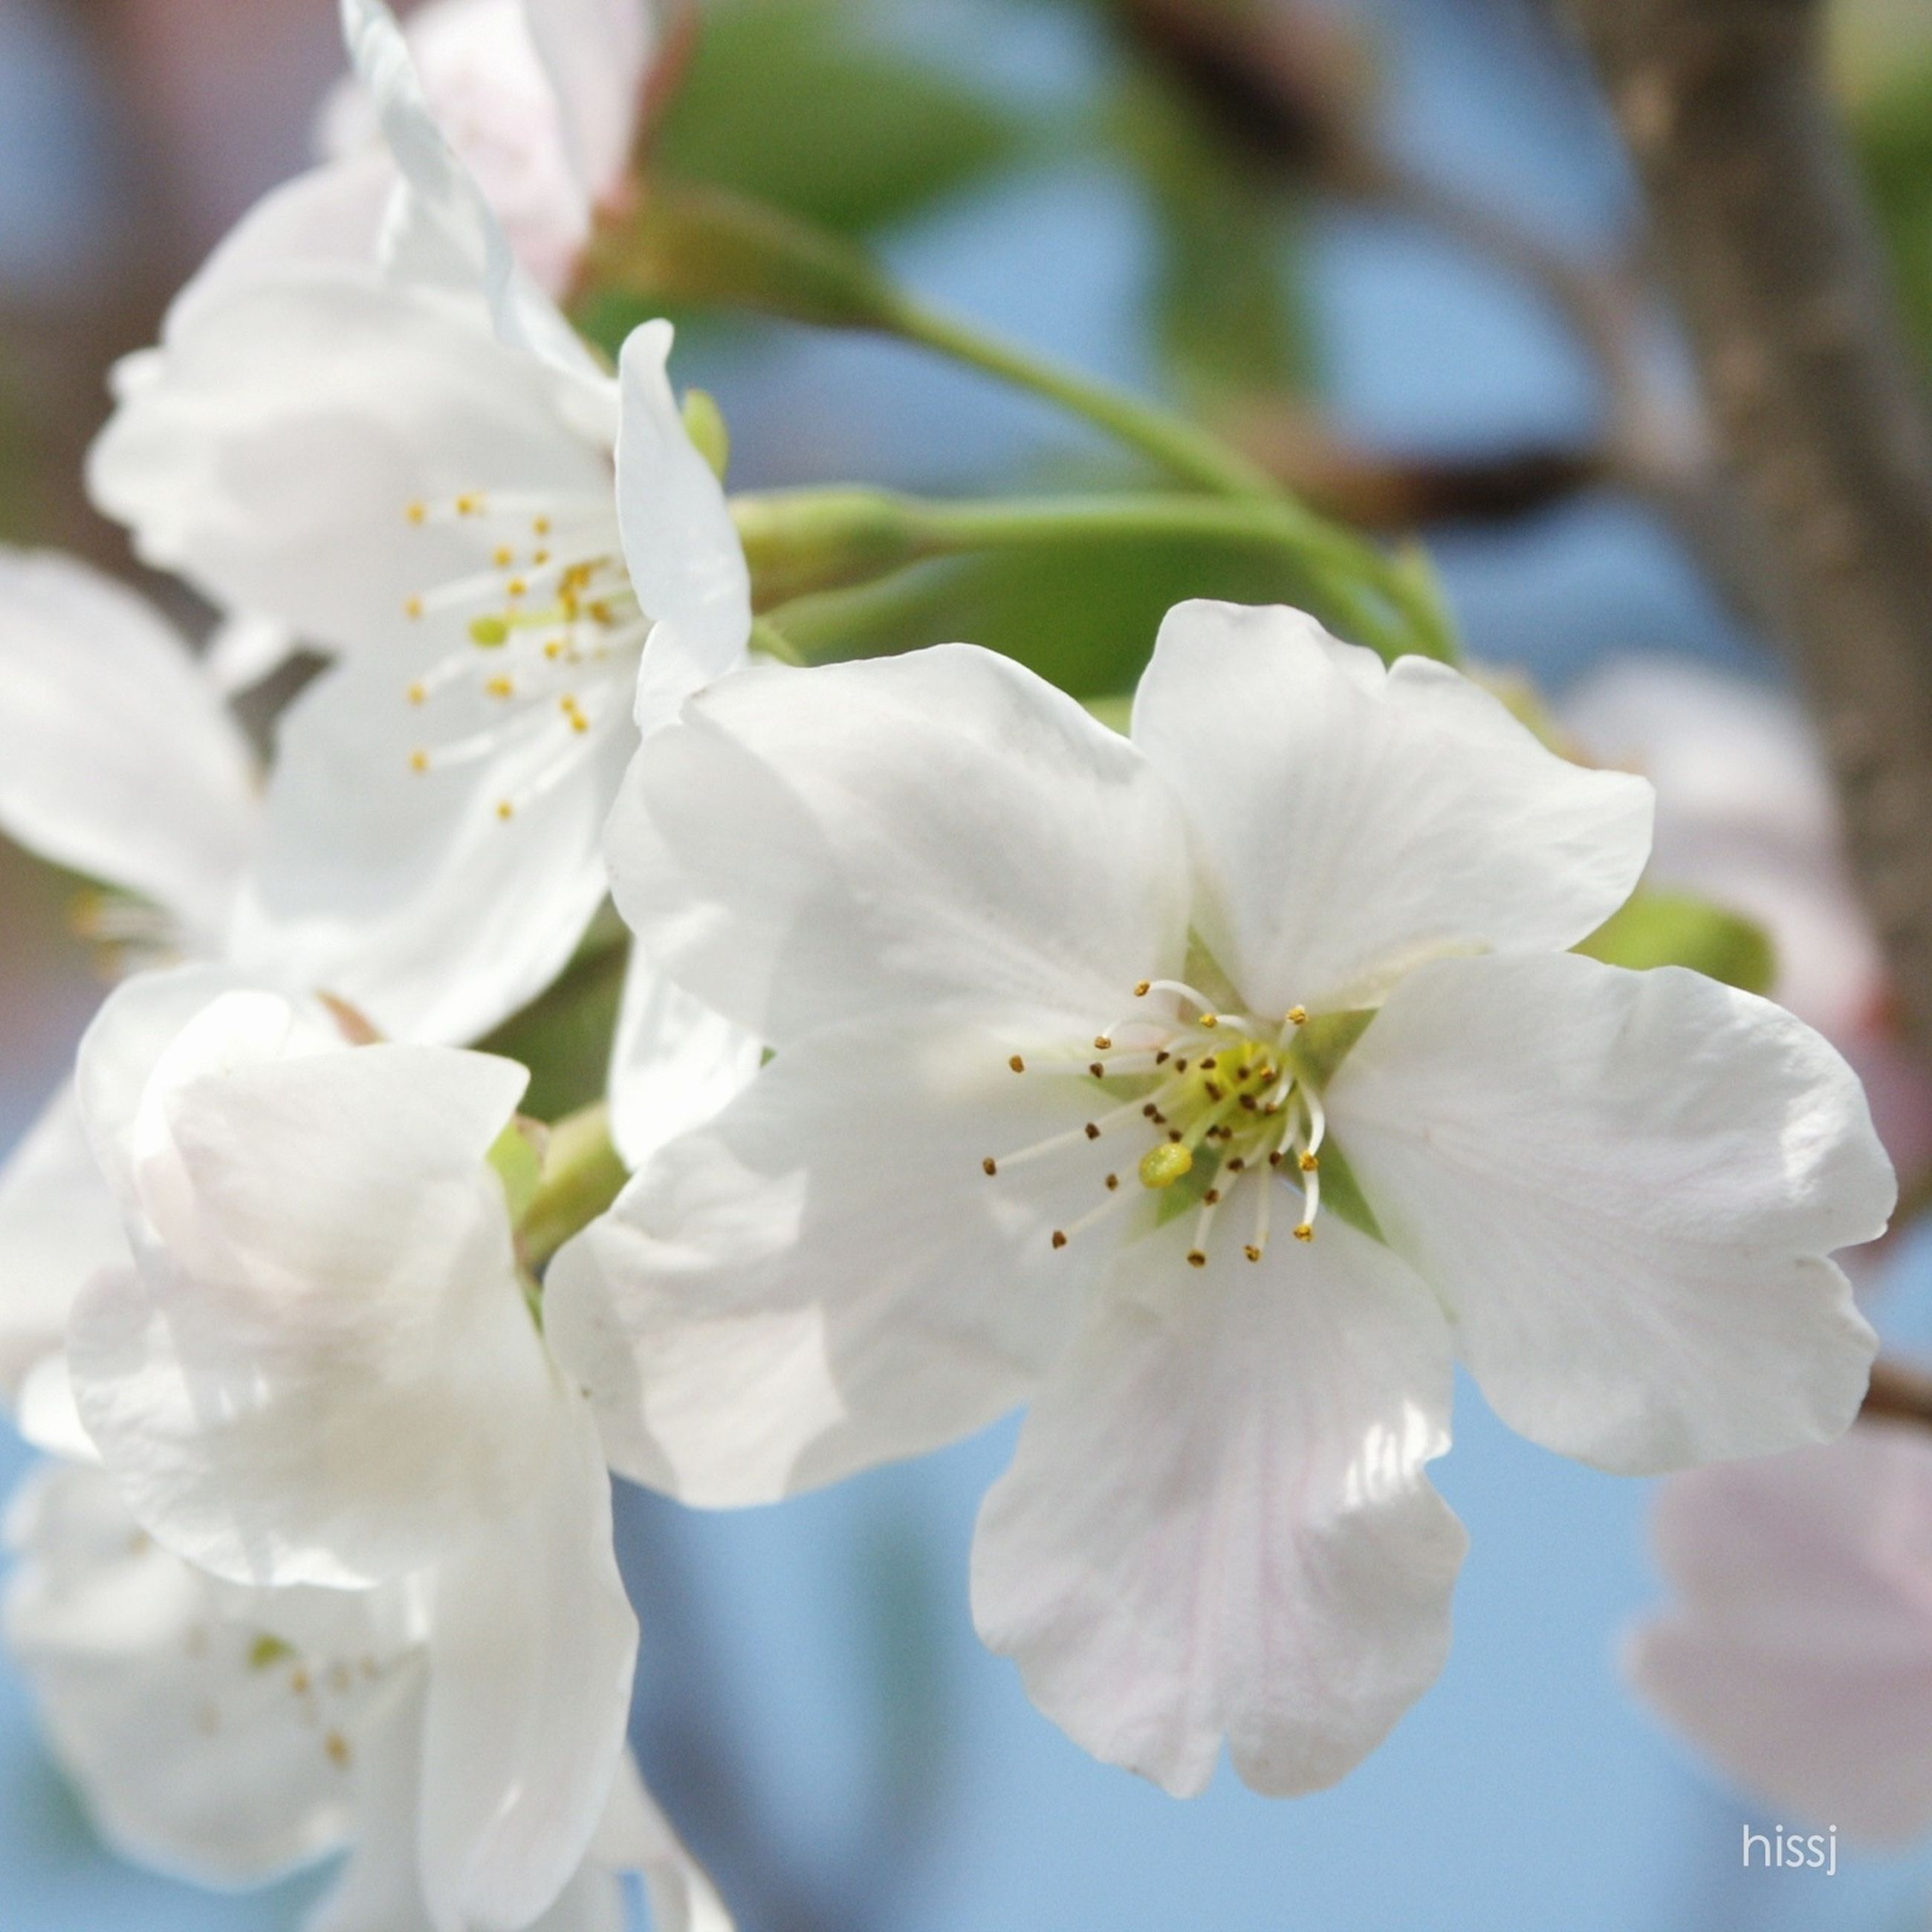 flower, freshness, petal, white color, fragility, growth, flower head, focus on foreground, beauty in nature, close-up, nature, blooming, blossom, stamen, cherry blossom, pollen, in bloom, white, tree, park - man made space